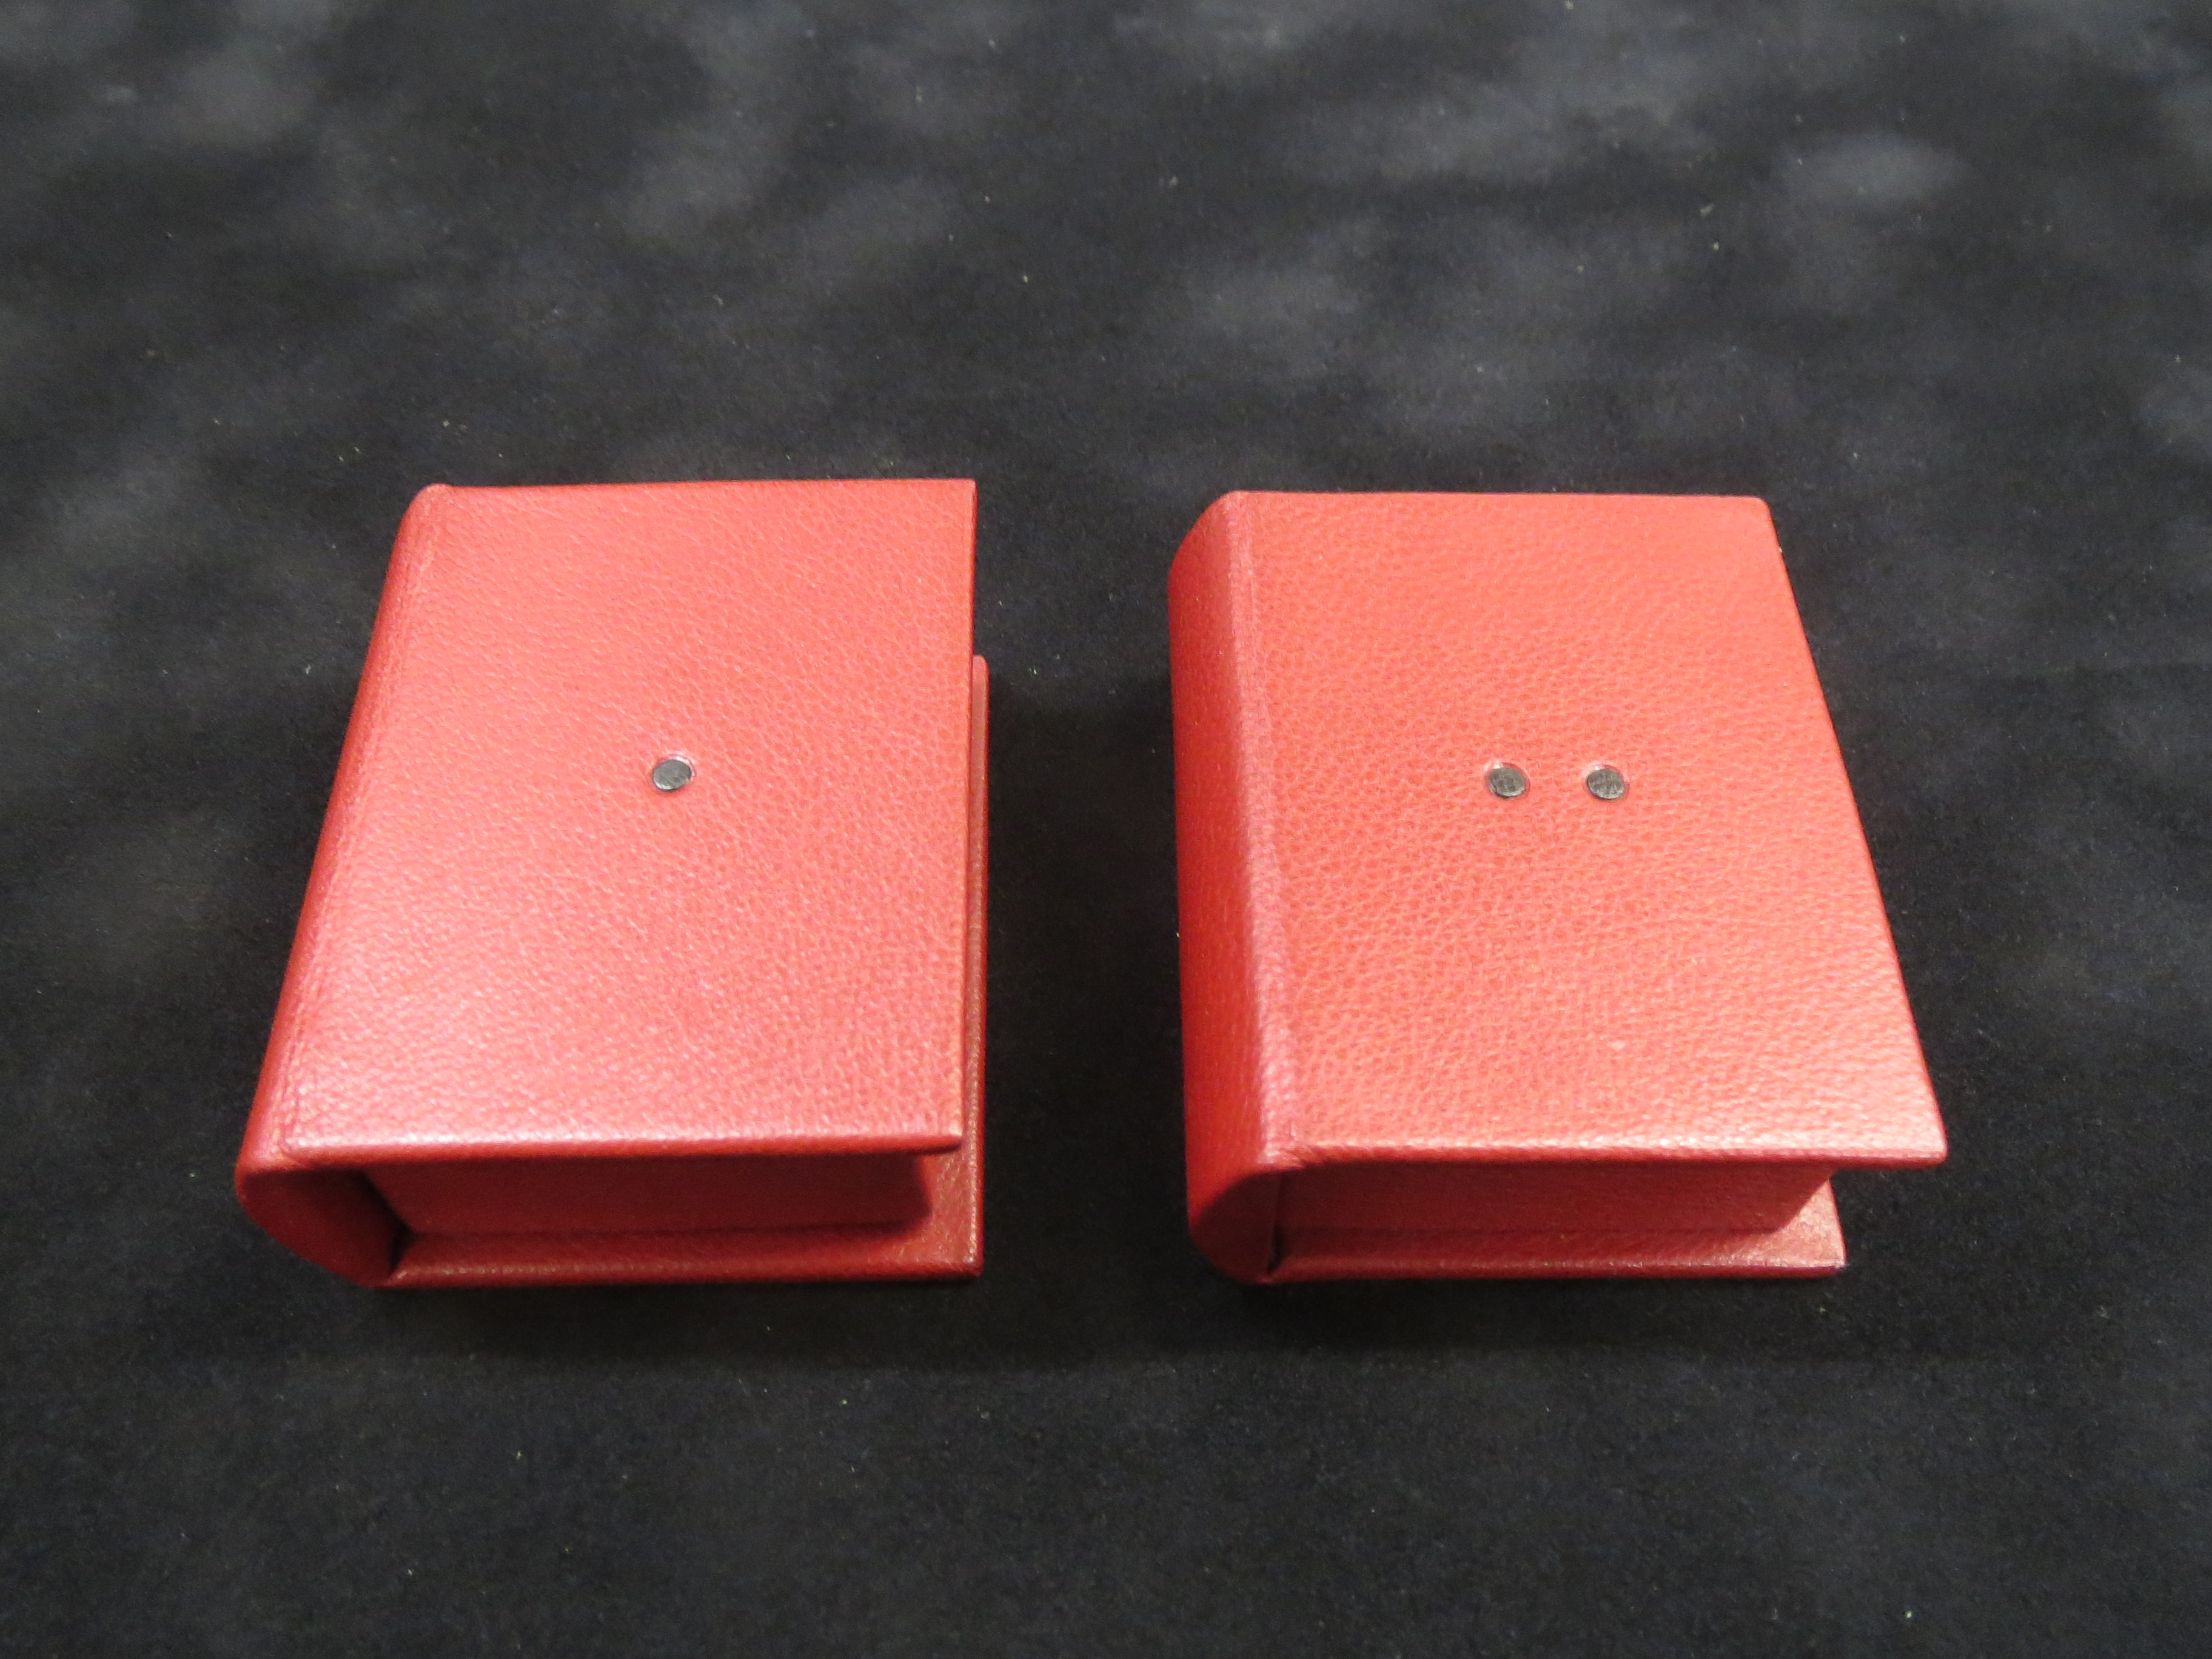 Miniature clamshell boxes